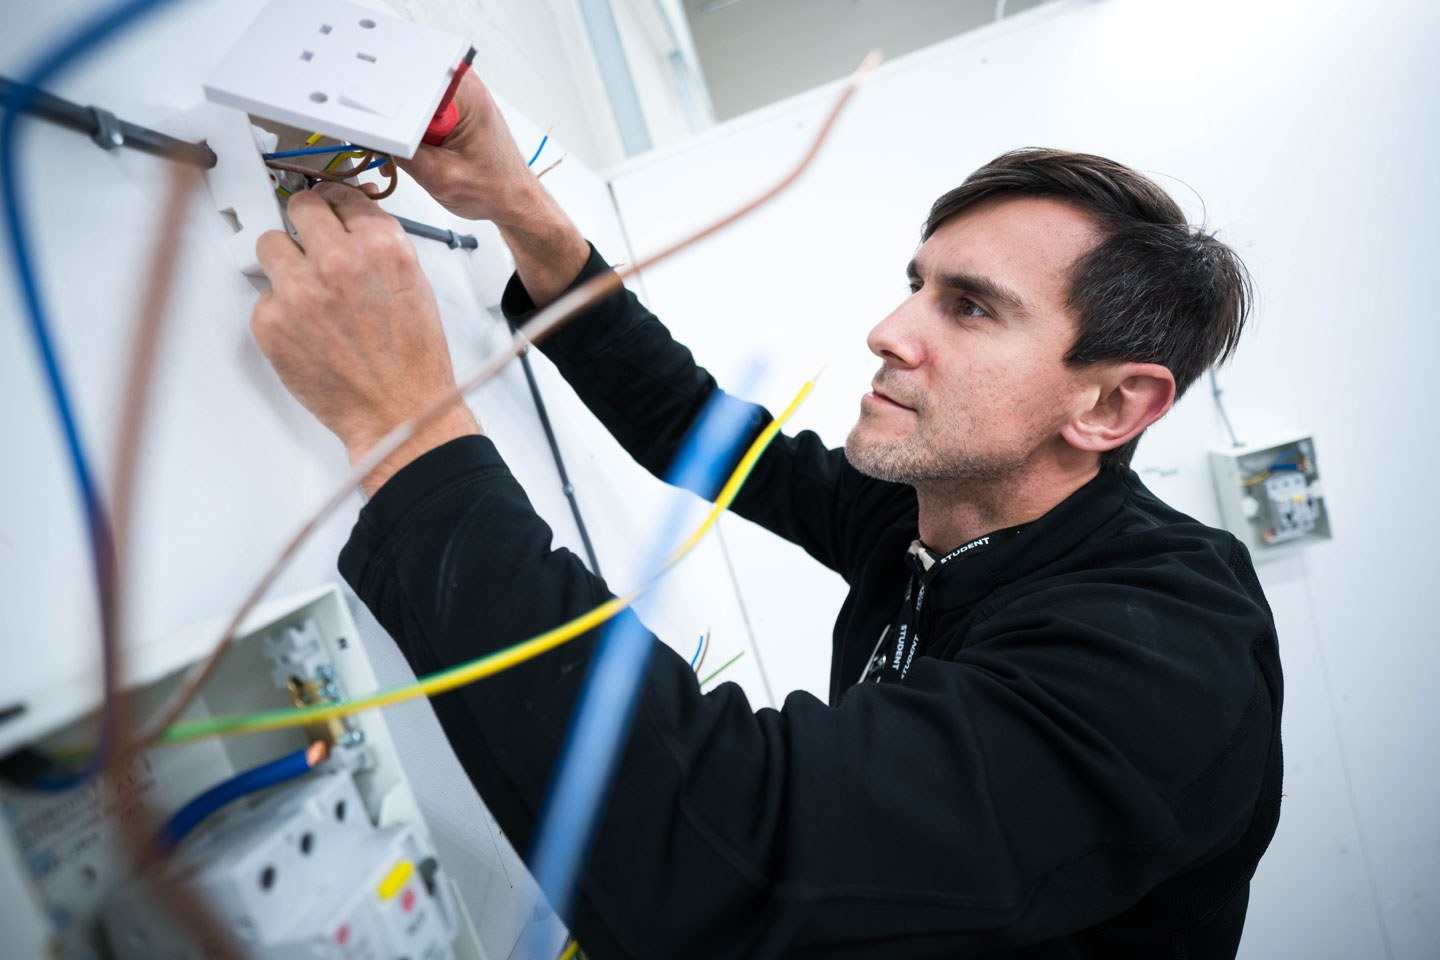 Electrician adult student working on a plug